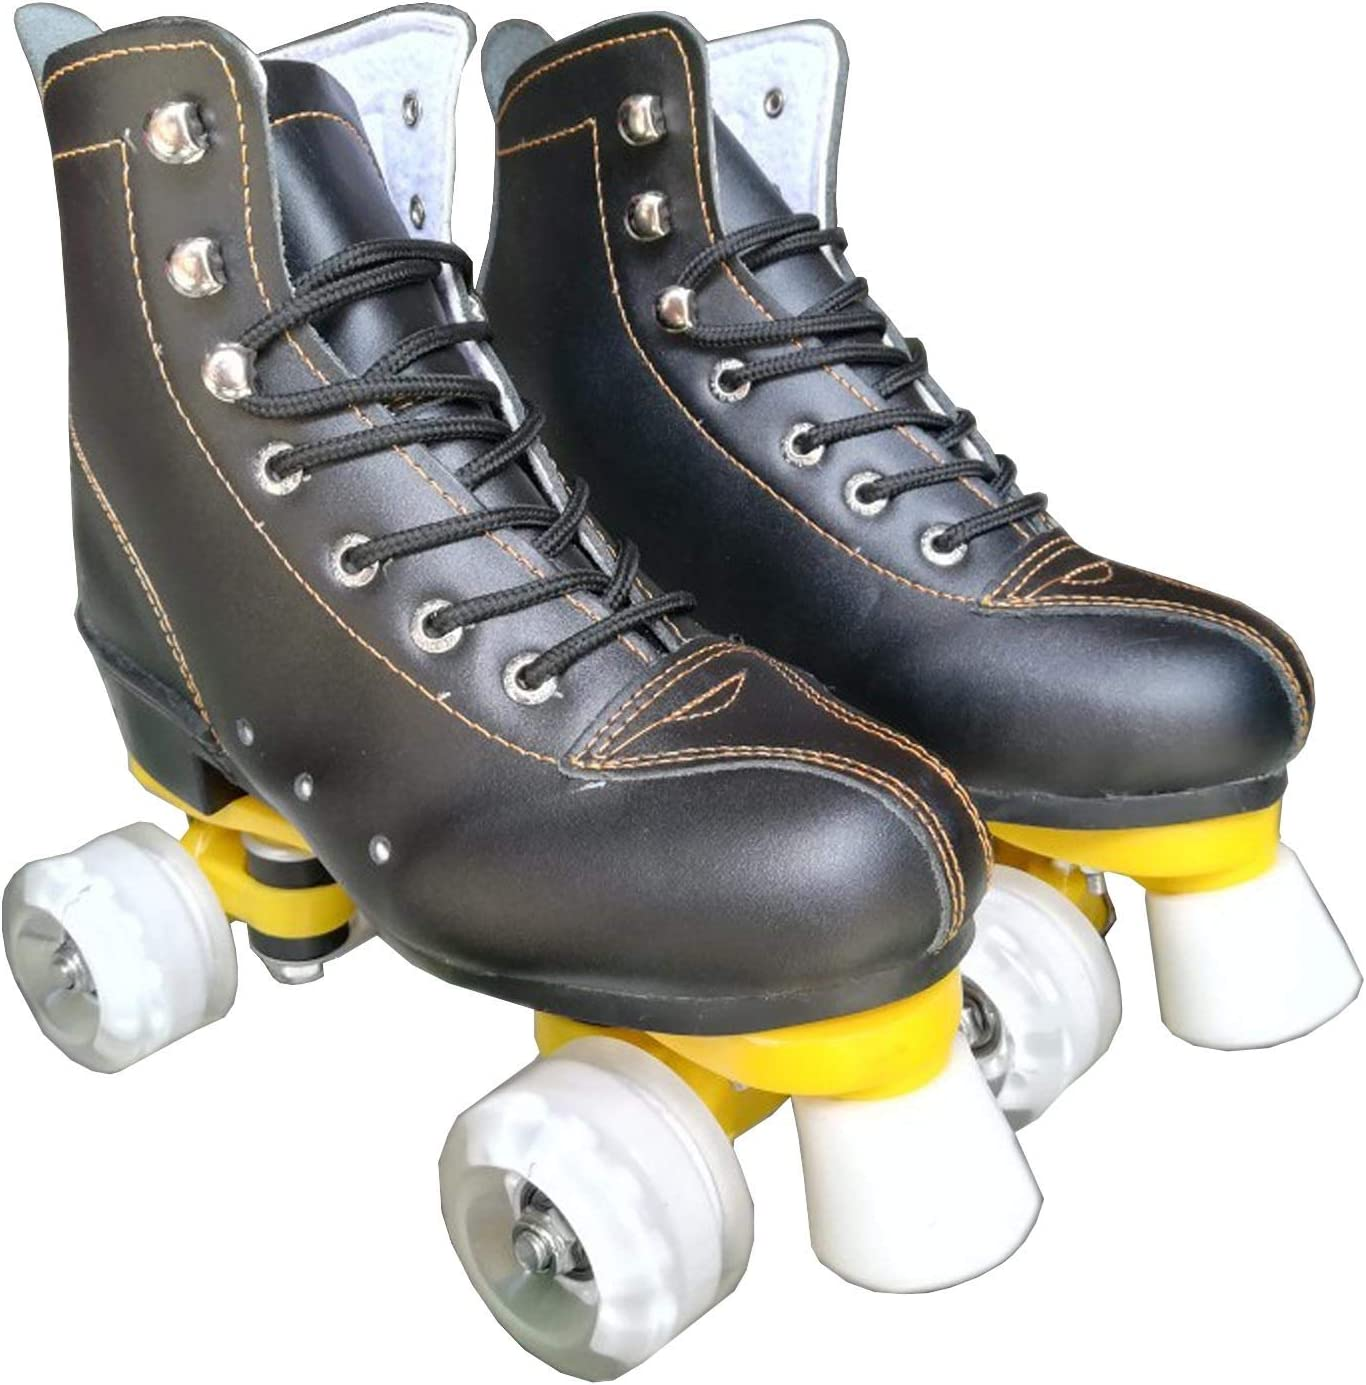 2021 autumn and winter new JXSHQS of Roller Skates Super Special SALE held Leather Adult Four-Wheel